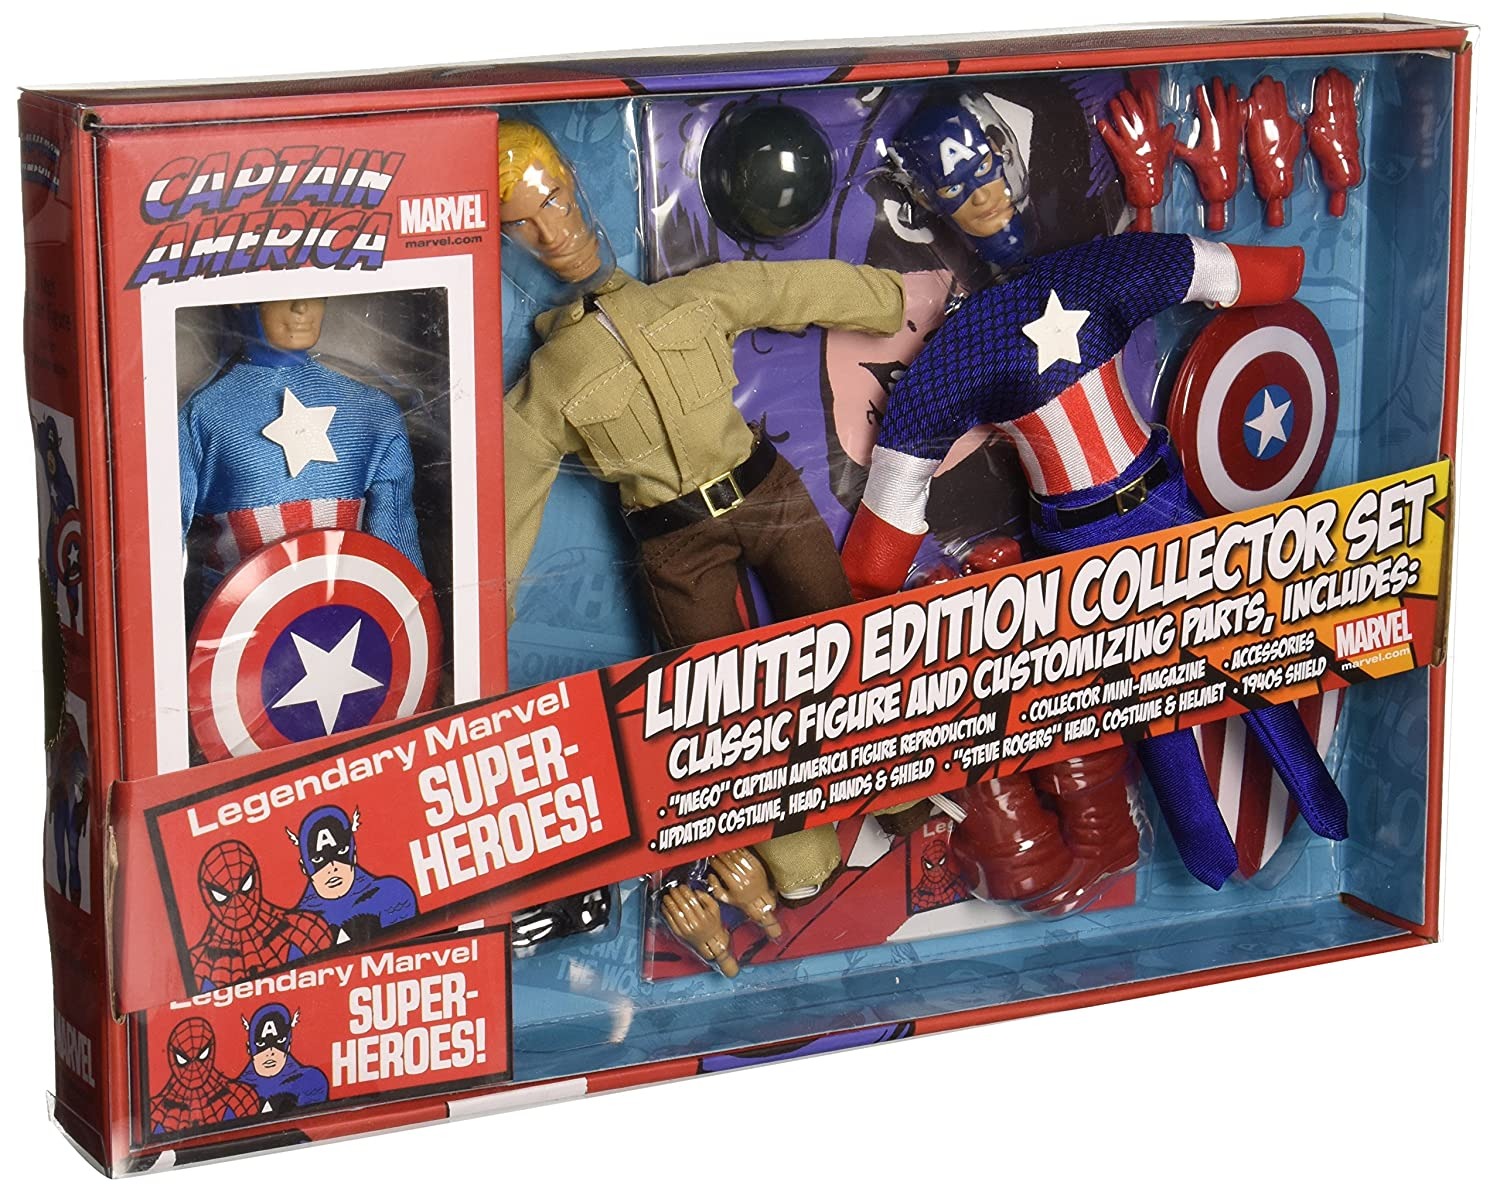 Marvel SEP142256 Captain America Toy, 8 inches